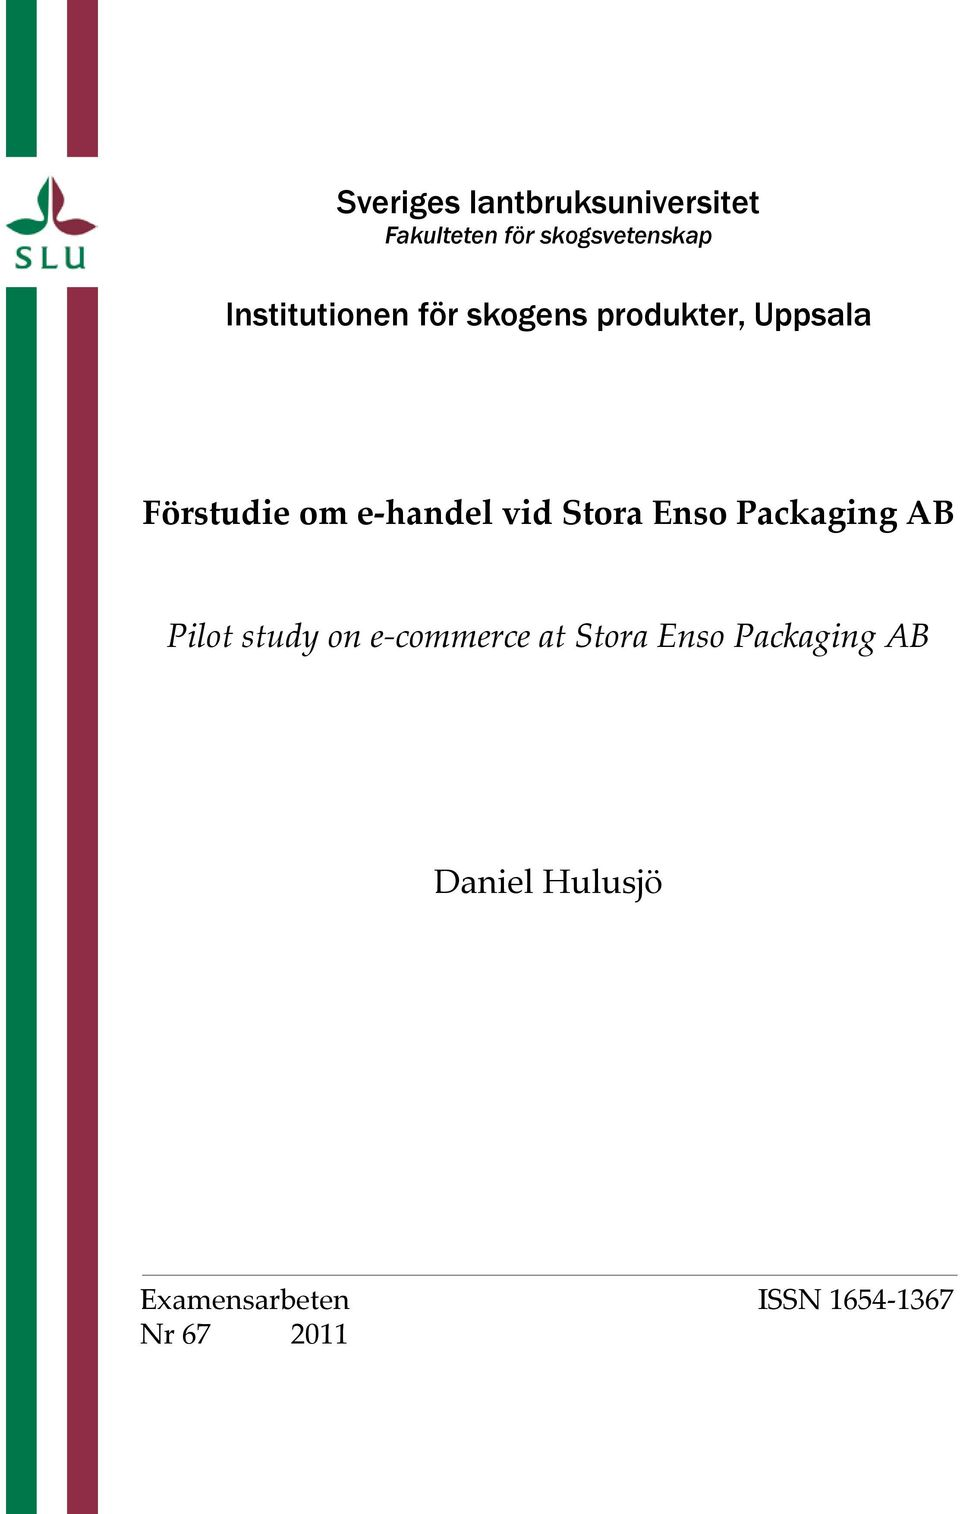 e-handel vid Stora Enso Packaging AB Pilot study on e-commerce at